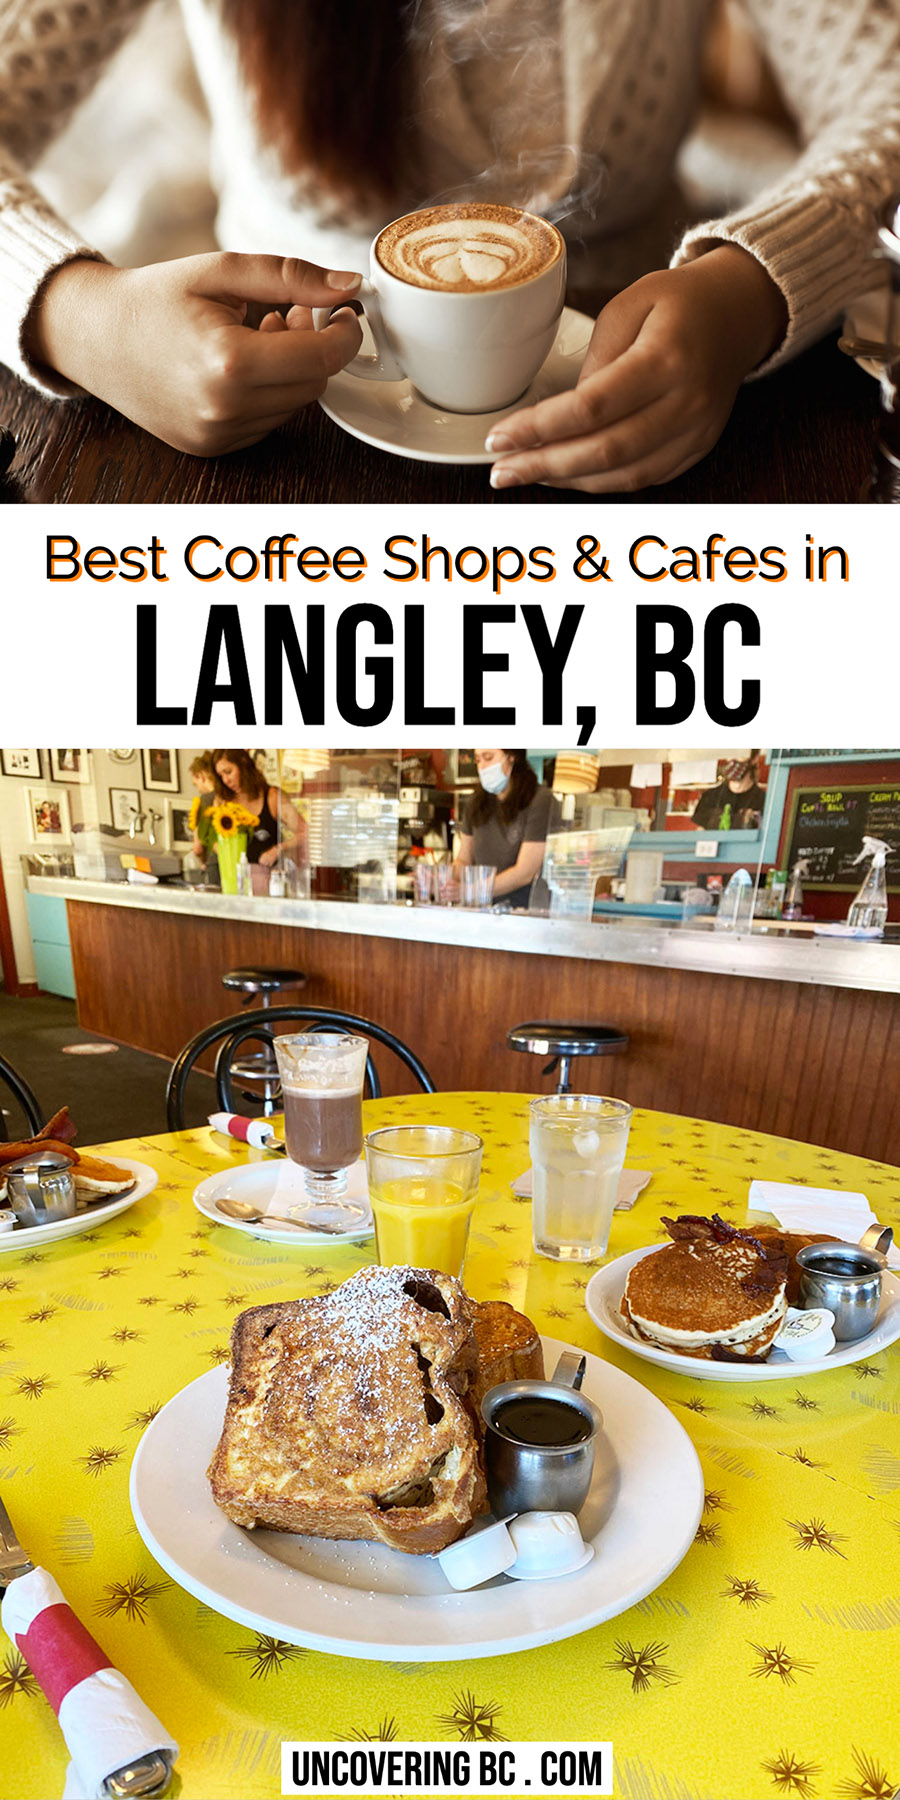 Best Cafes in Langley Coffee Shops